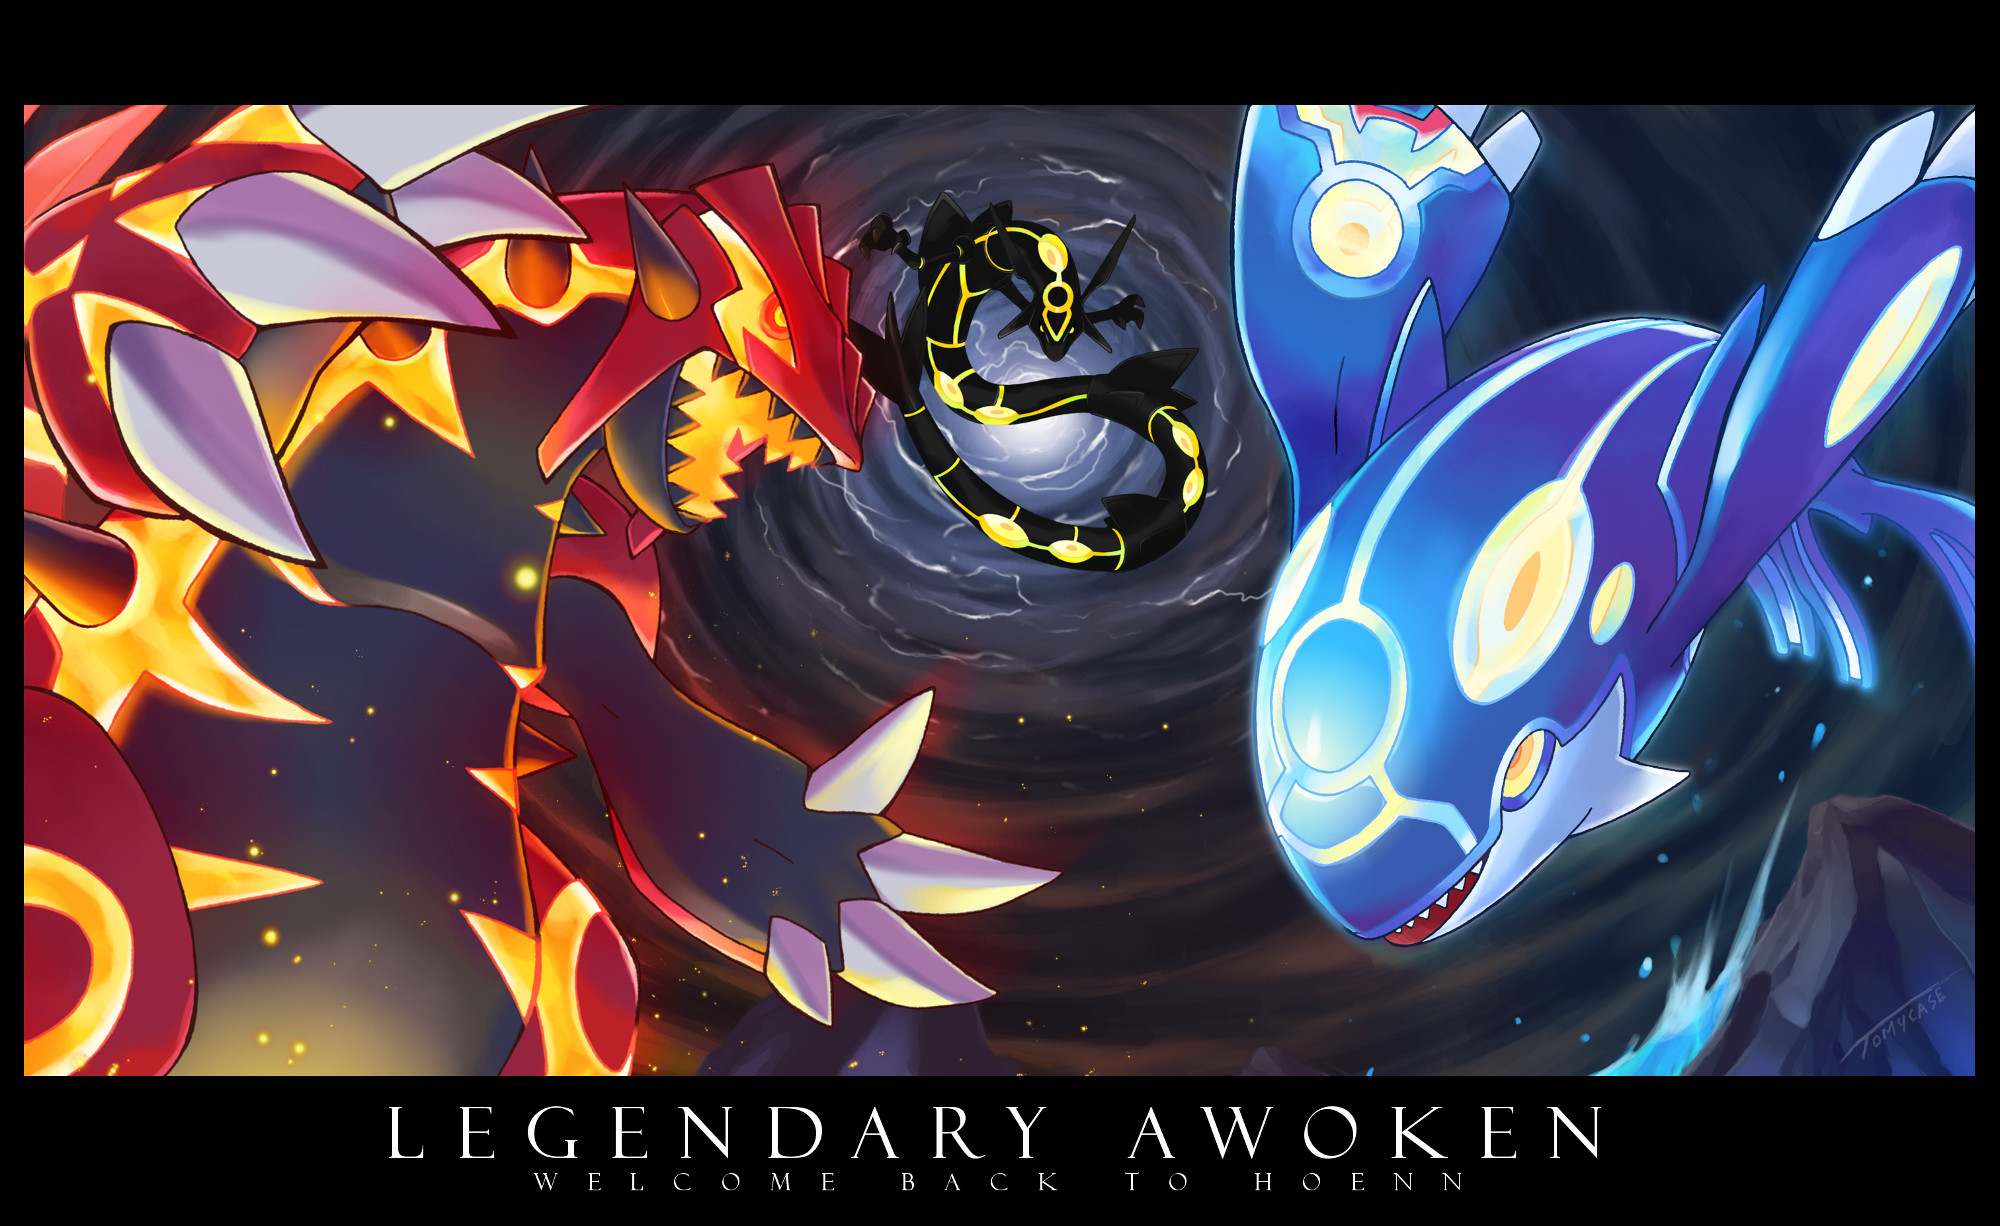 Primal groudon and kyogre wallpaper 70 images - Pictures of groudon and kyogre ...